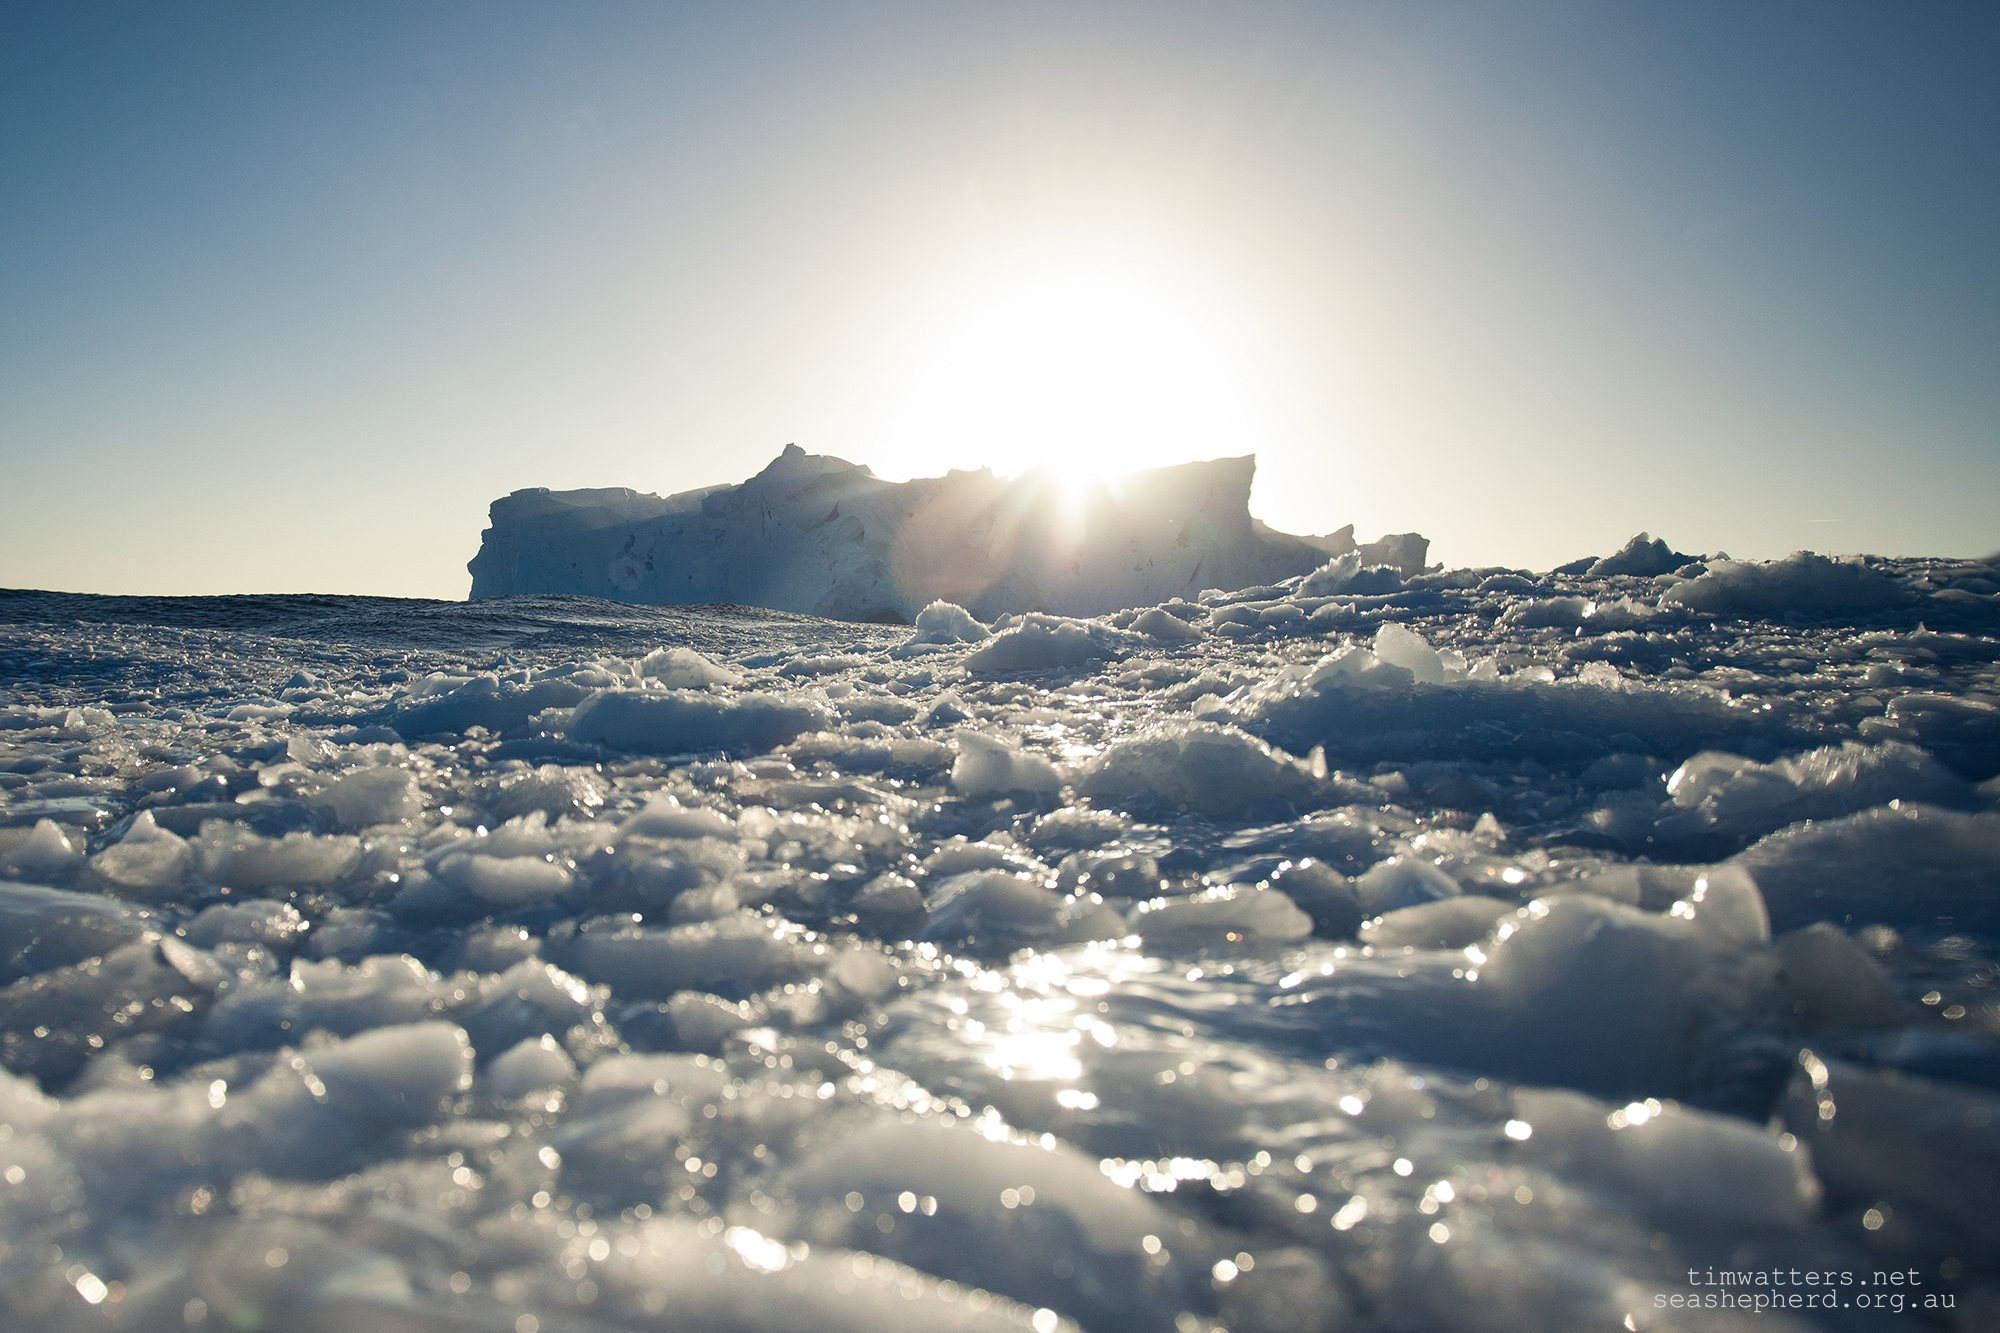 An iceberg as viewed from within the cold water of Antarctica.